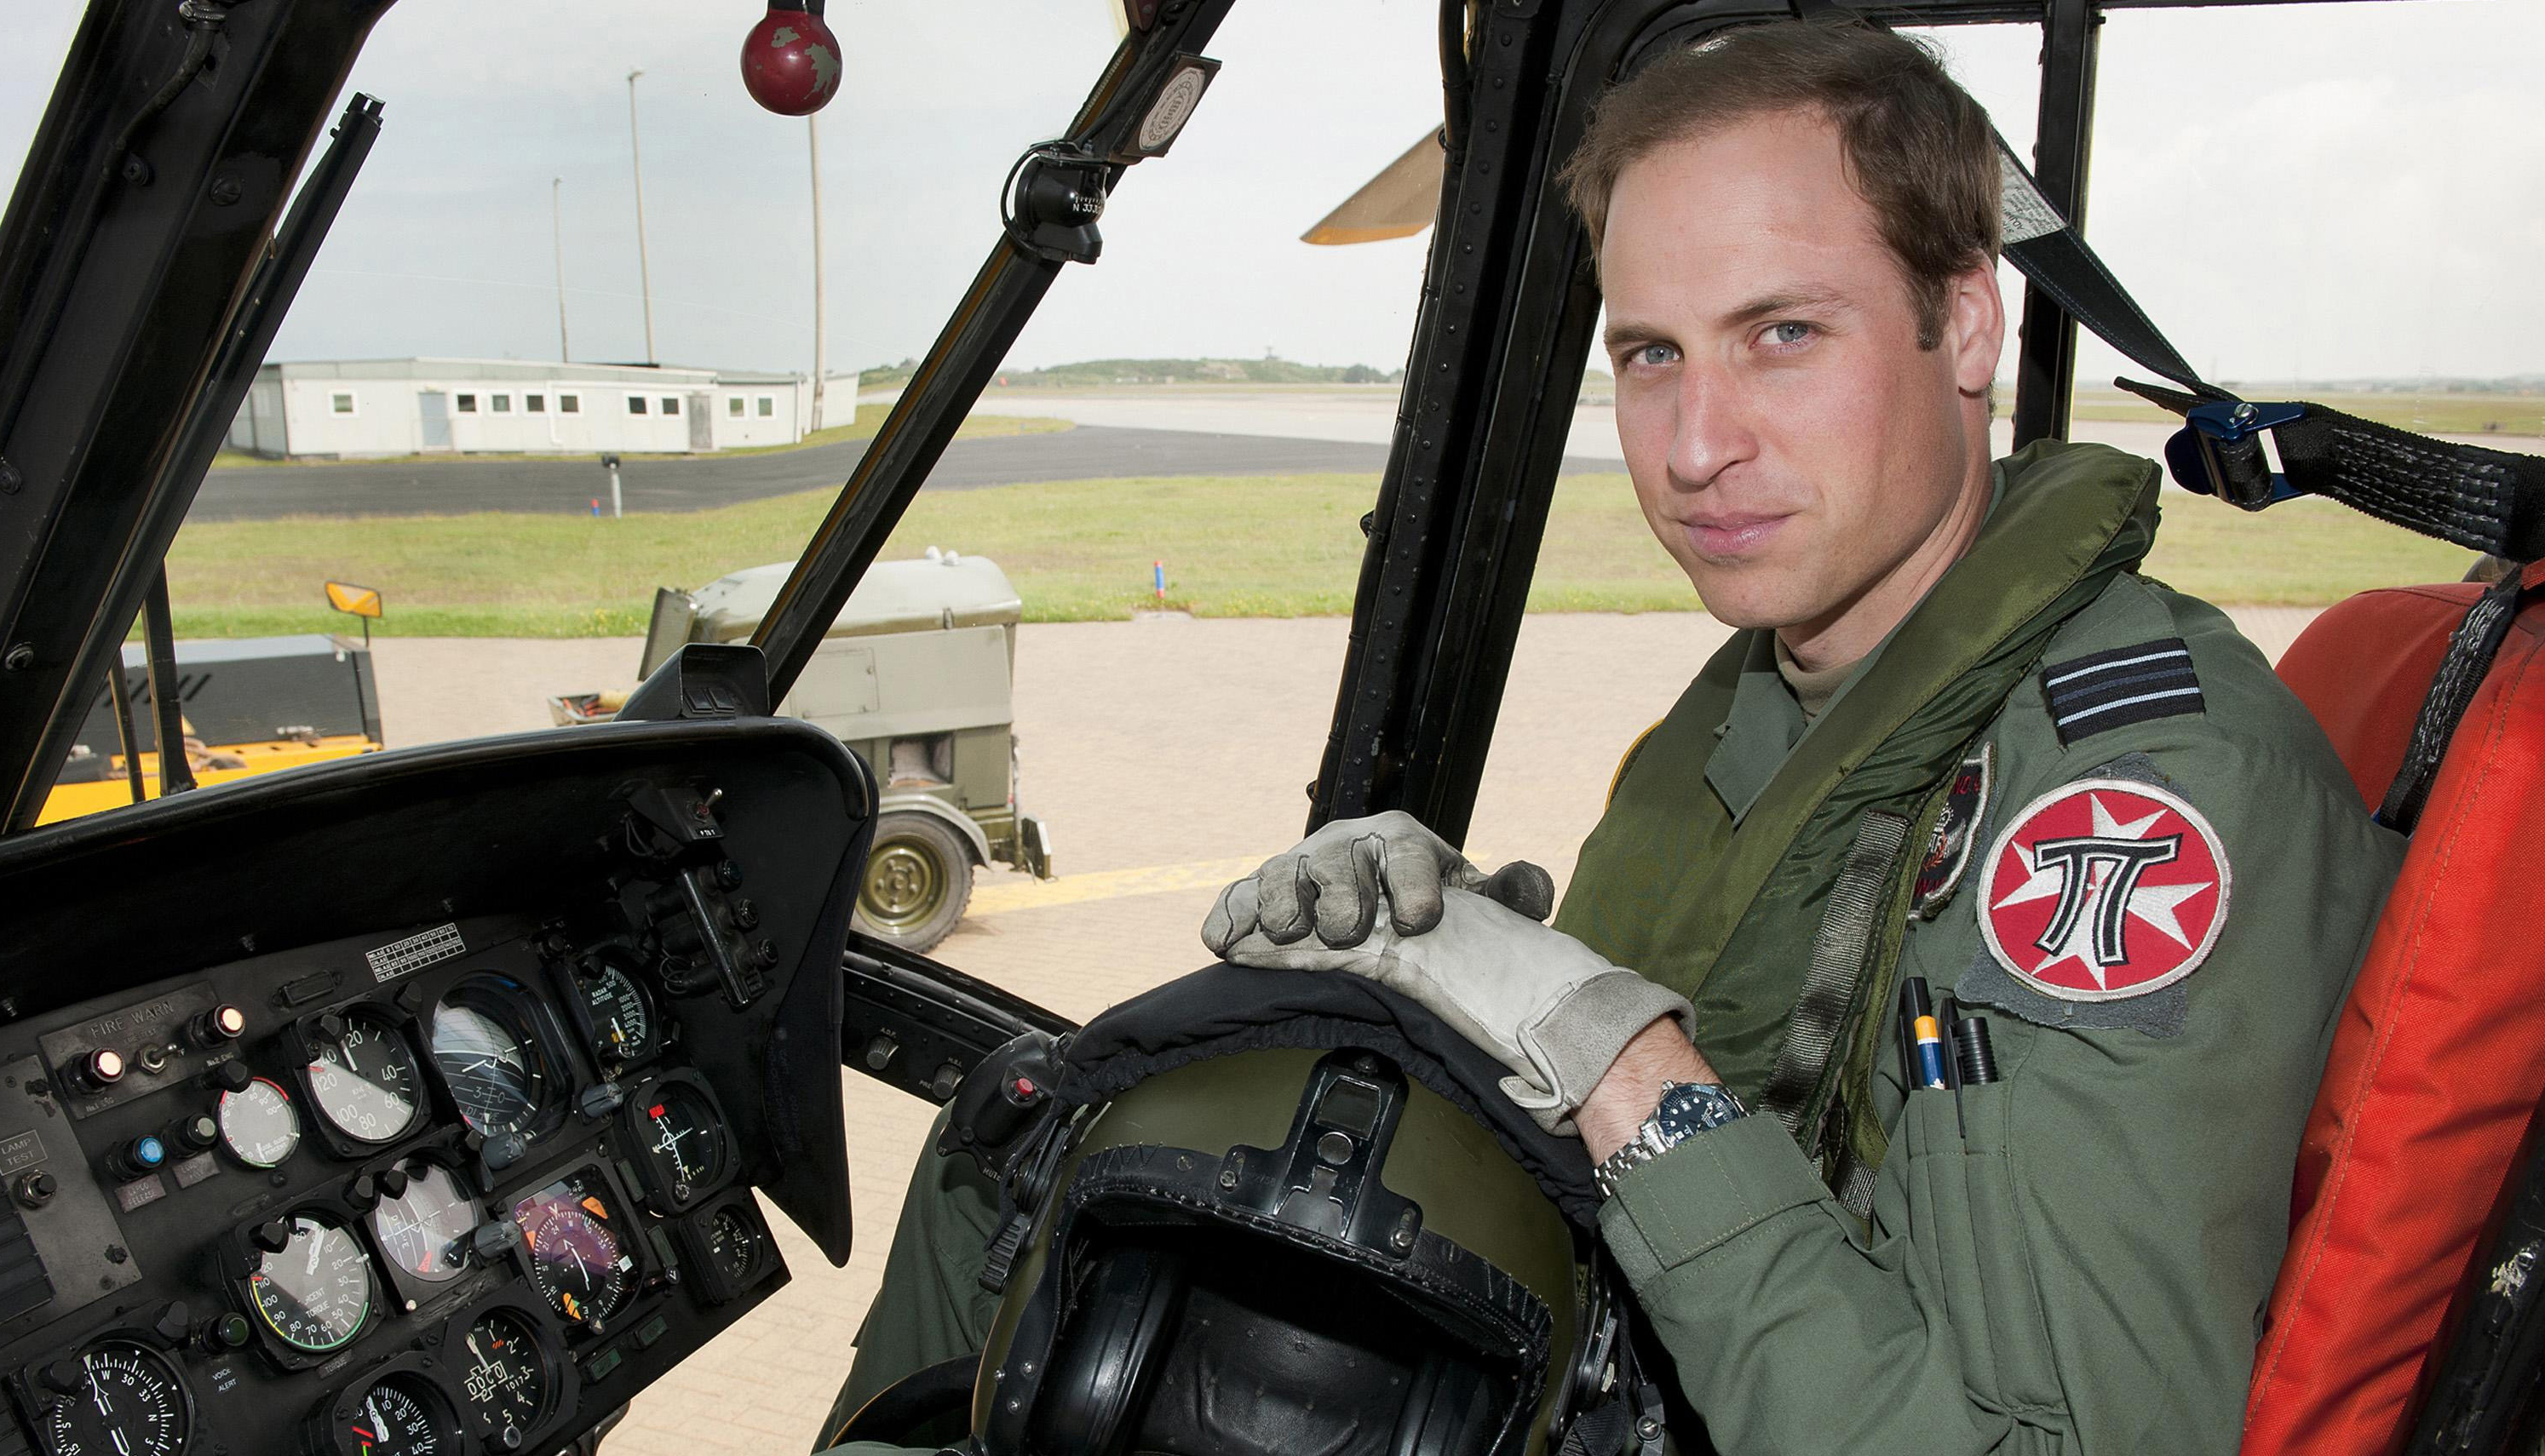 Prince William's Air Ambulance Pilot Days (and Nights) Over